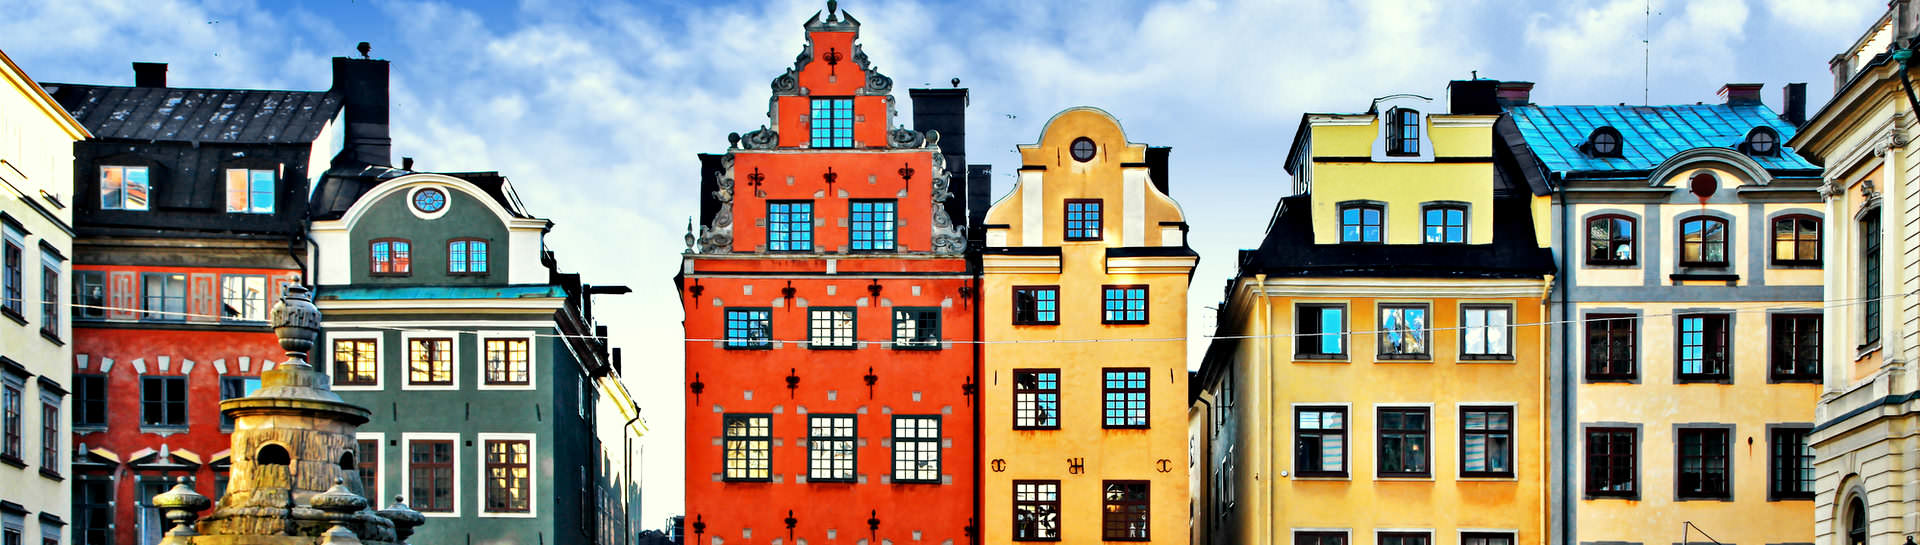 Take a break at one of the cozy cafes at Stortorget - the heart of the Old Town of Stockholm